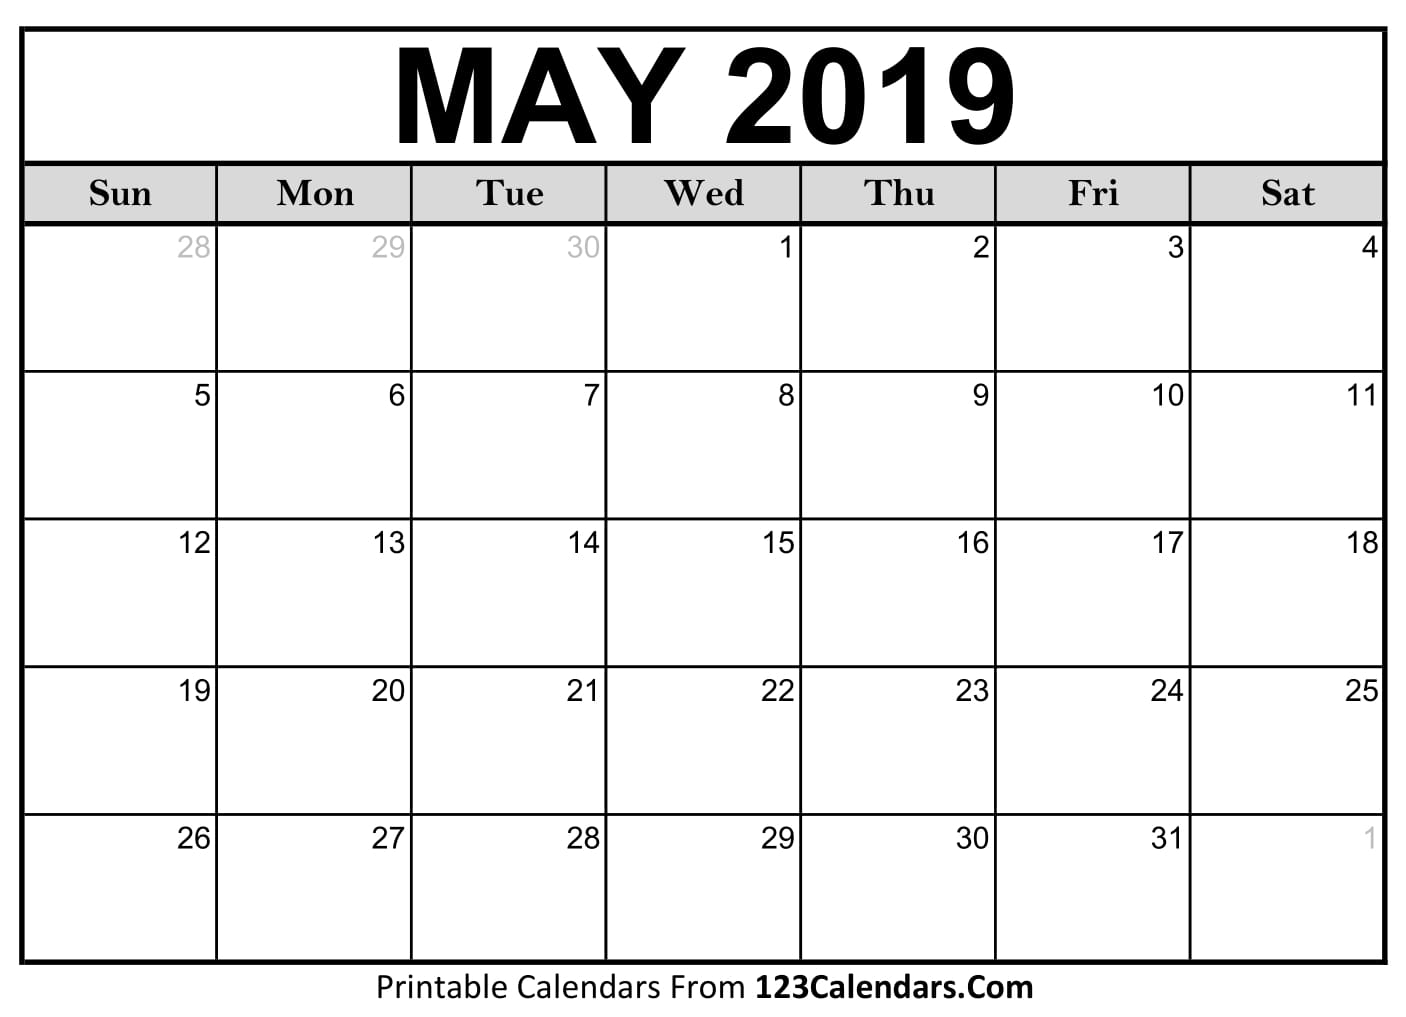 Calendar May Template : Printable may calendar templates calendars